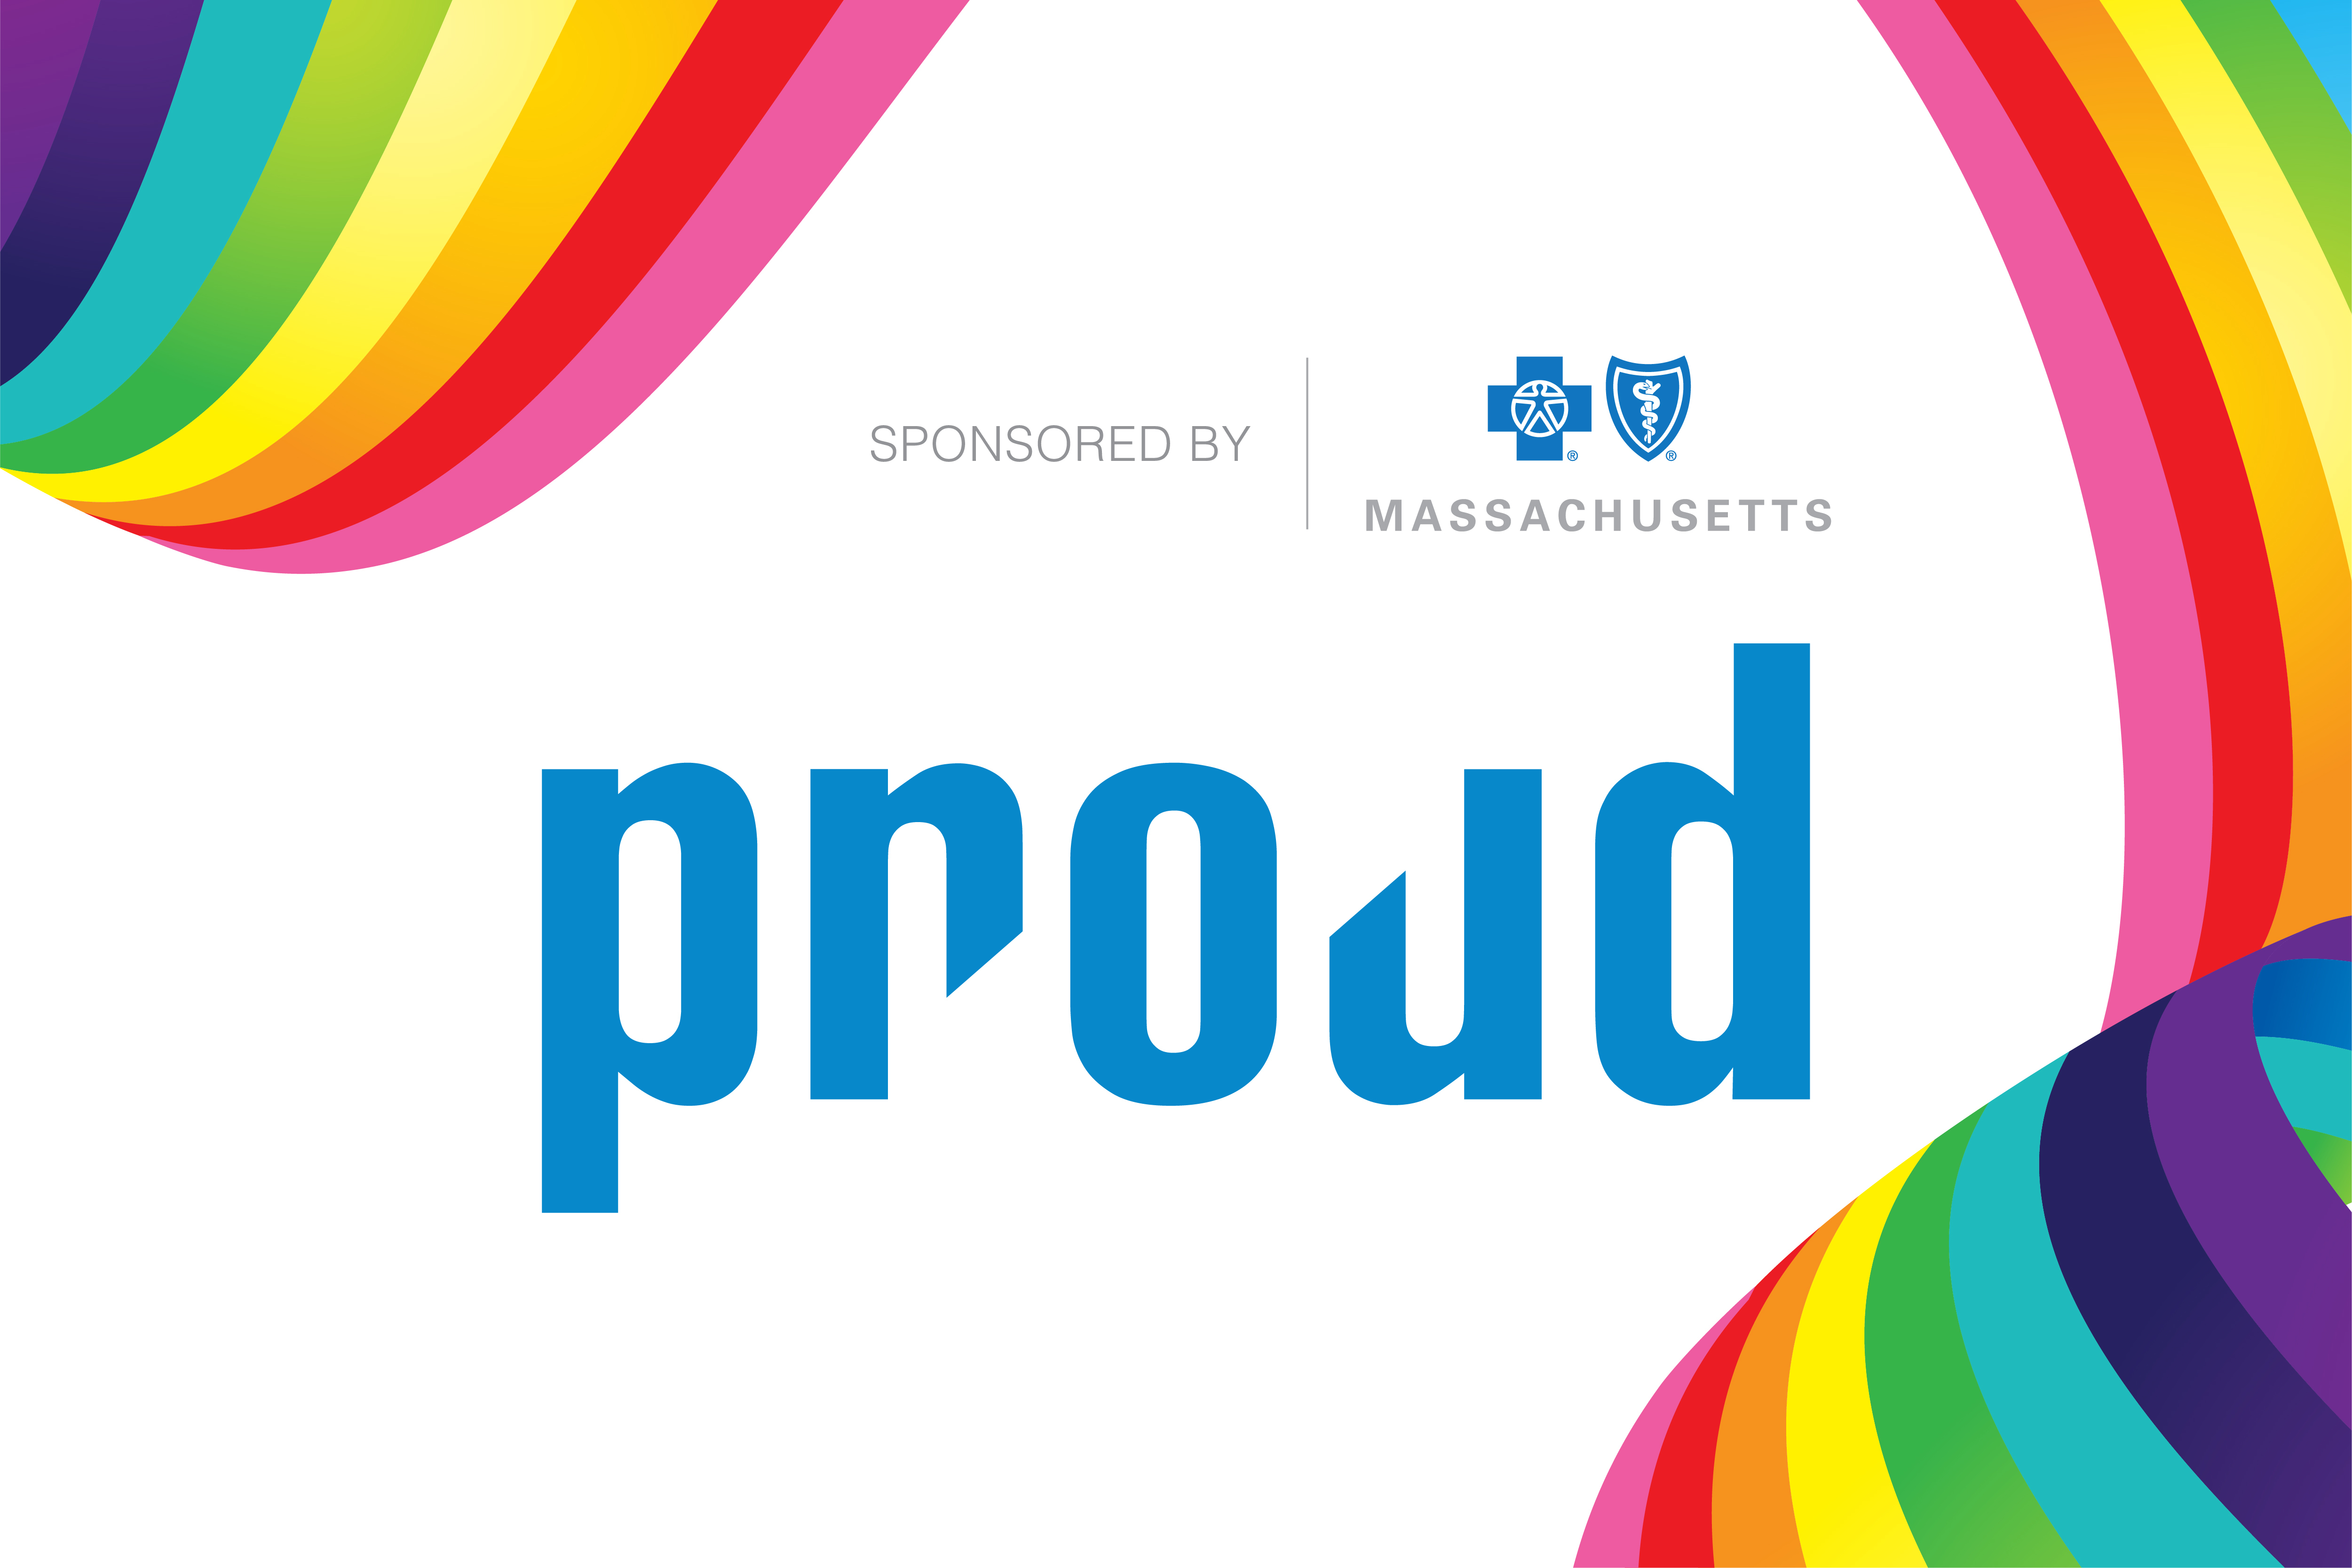 Blue Cross Pride Assets Email 5 31 19 02 1